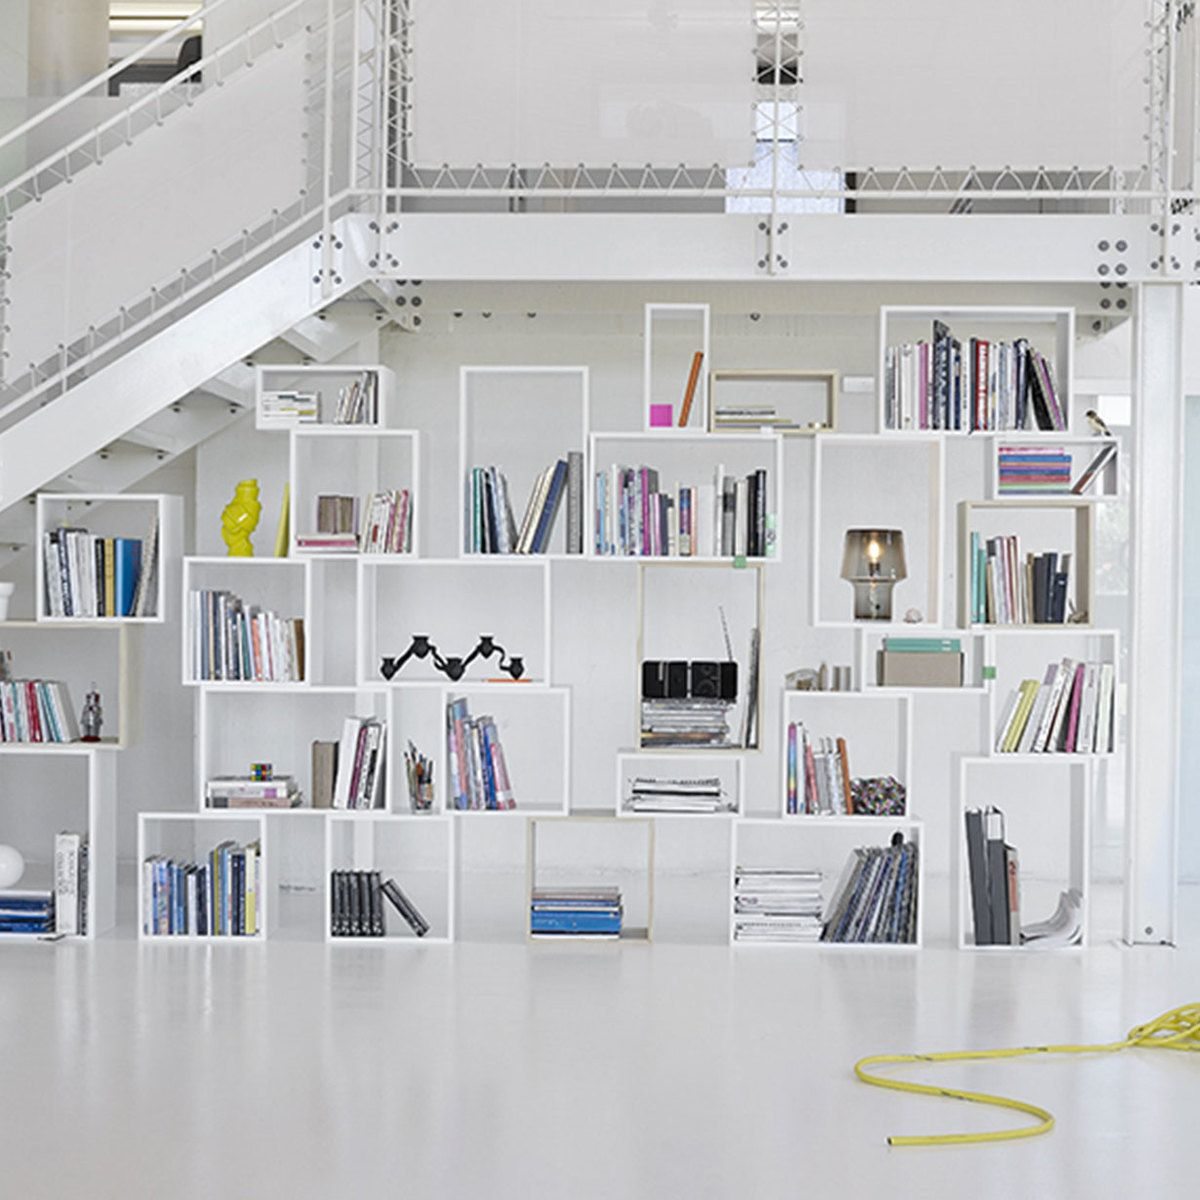 The Stacked Shelfing System Is A Modular, Innovative Shelving Solution  Designed By Muuto To Meet